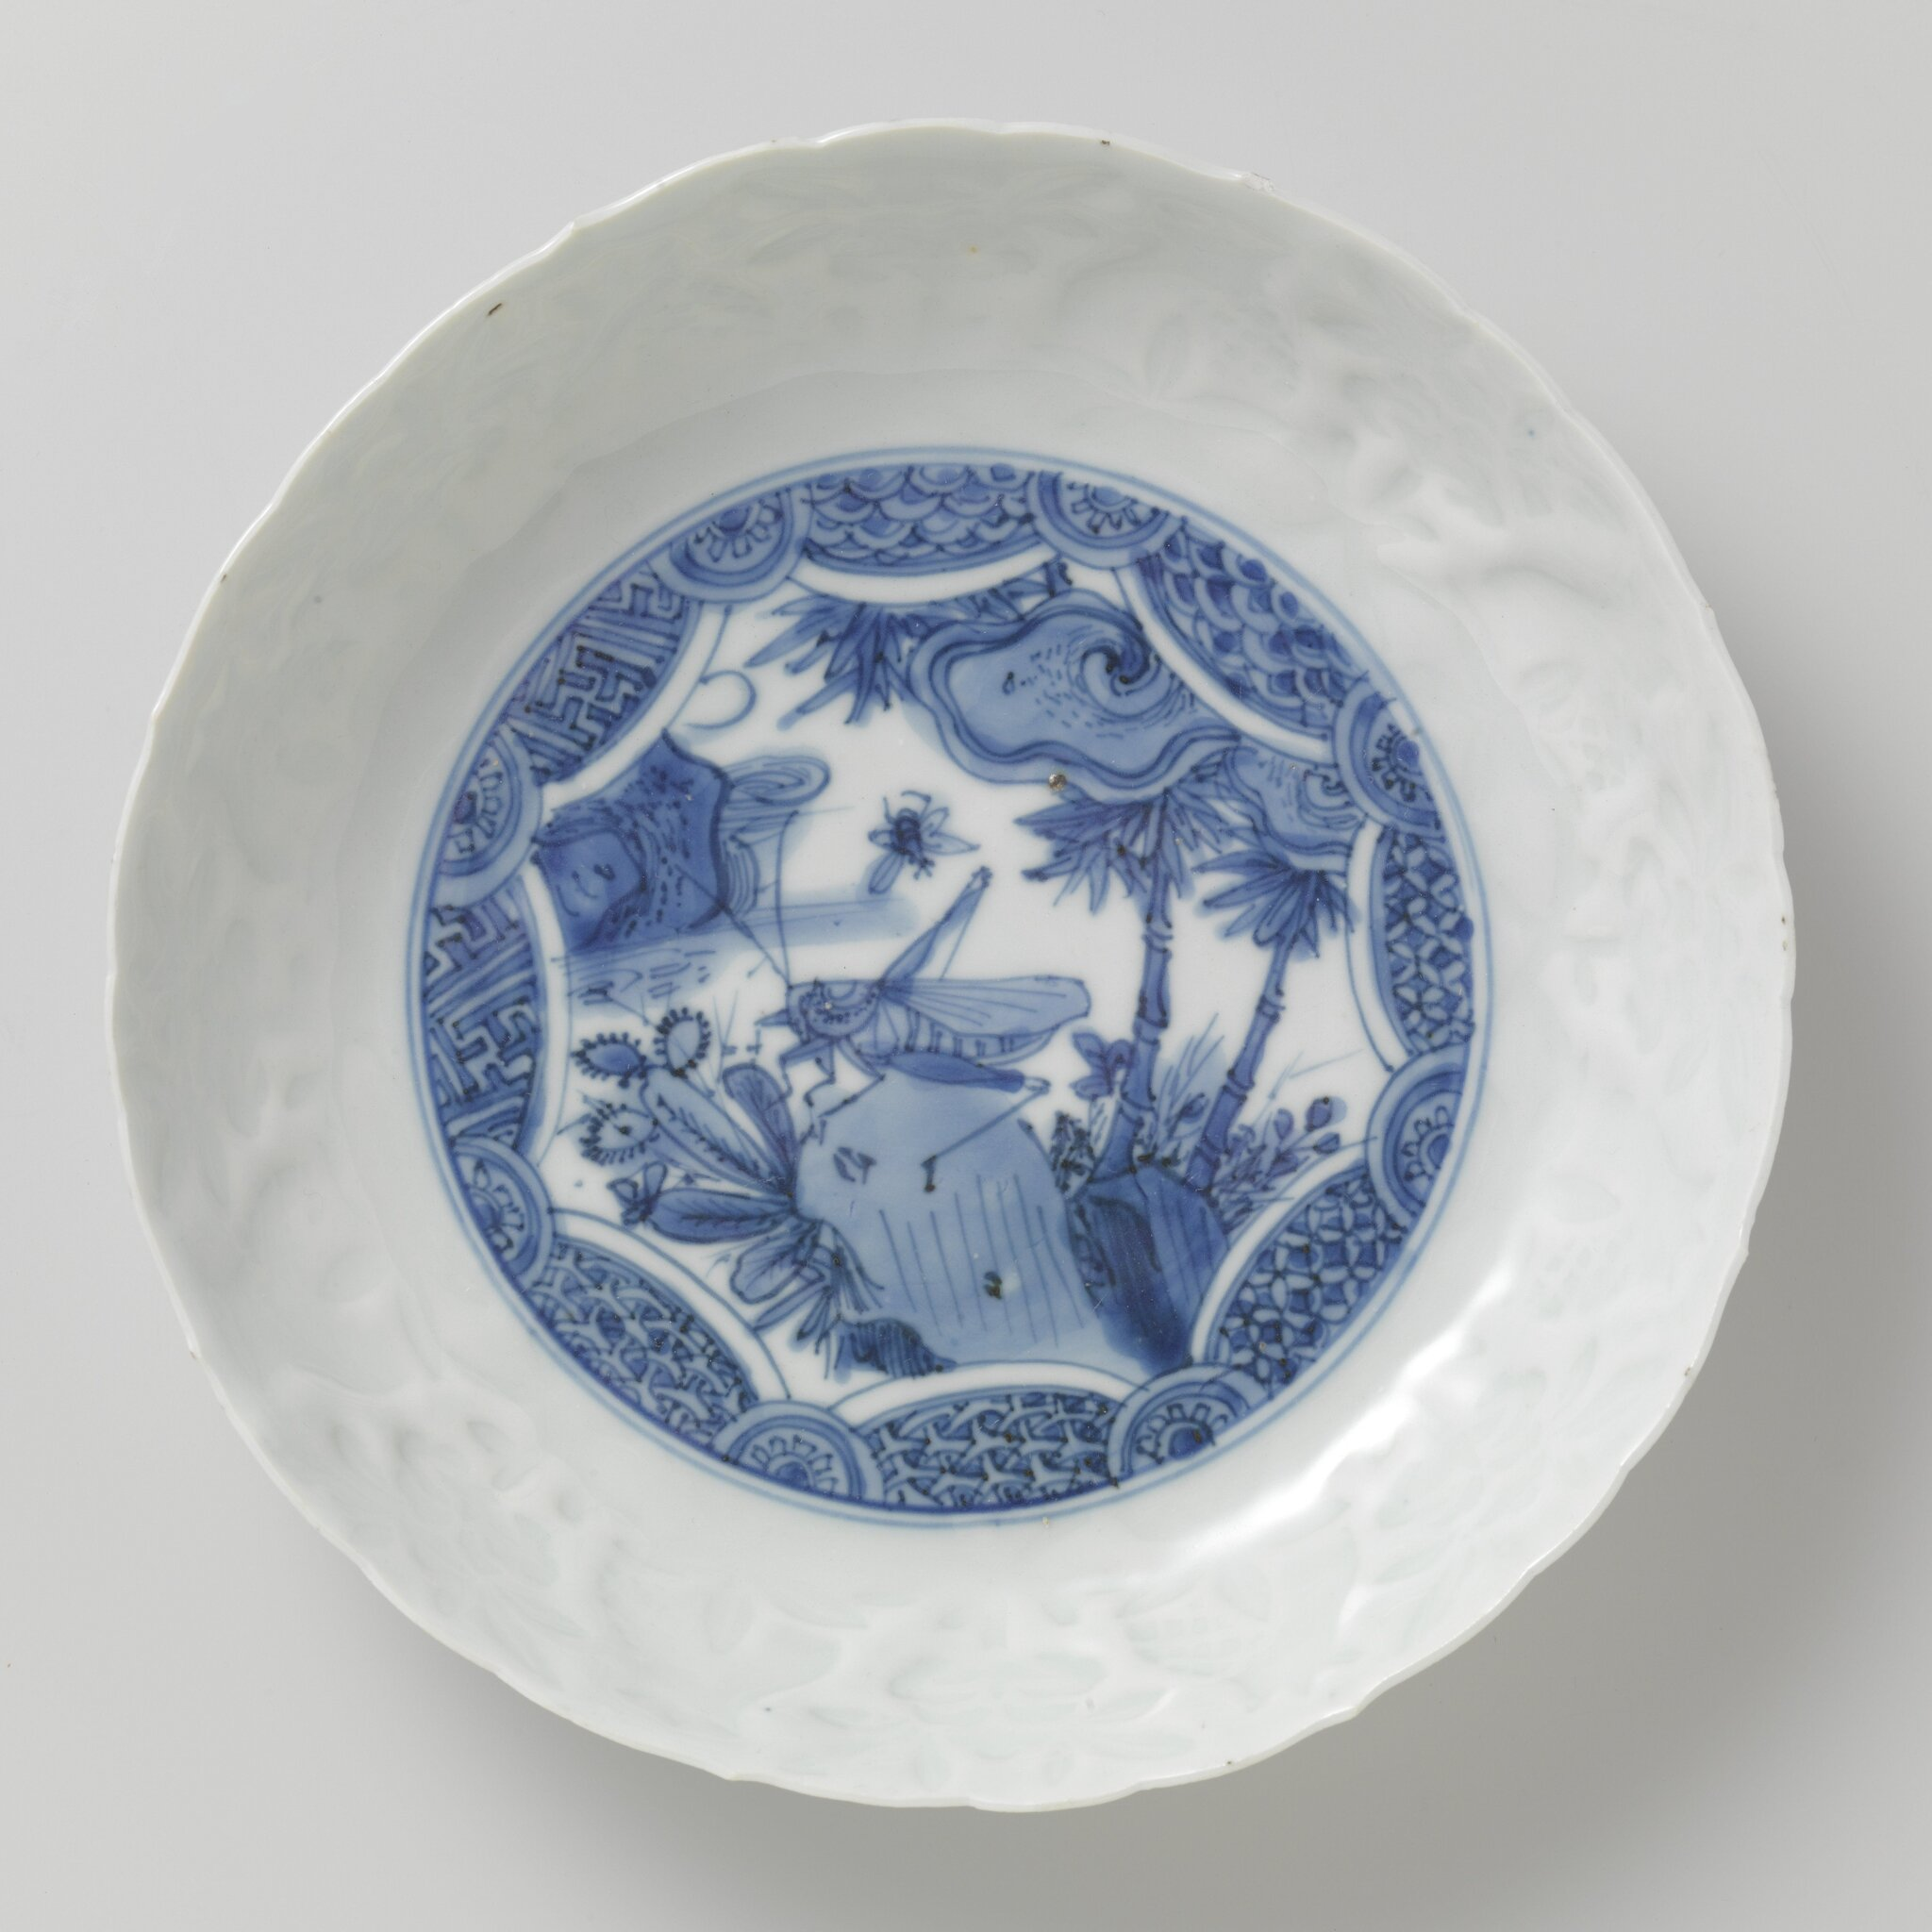 Blue_and_white_dish_with_grasshopper__Wanli_period__1573_1619___1580_1620